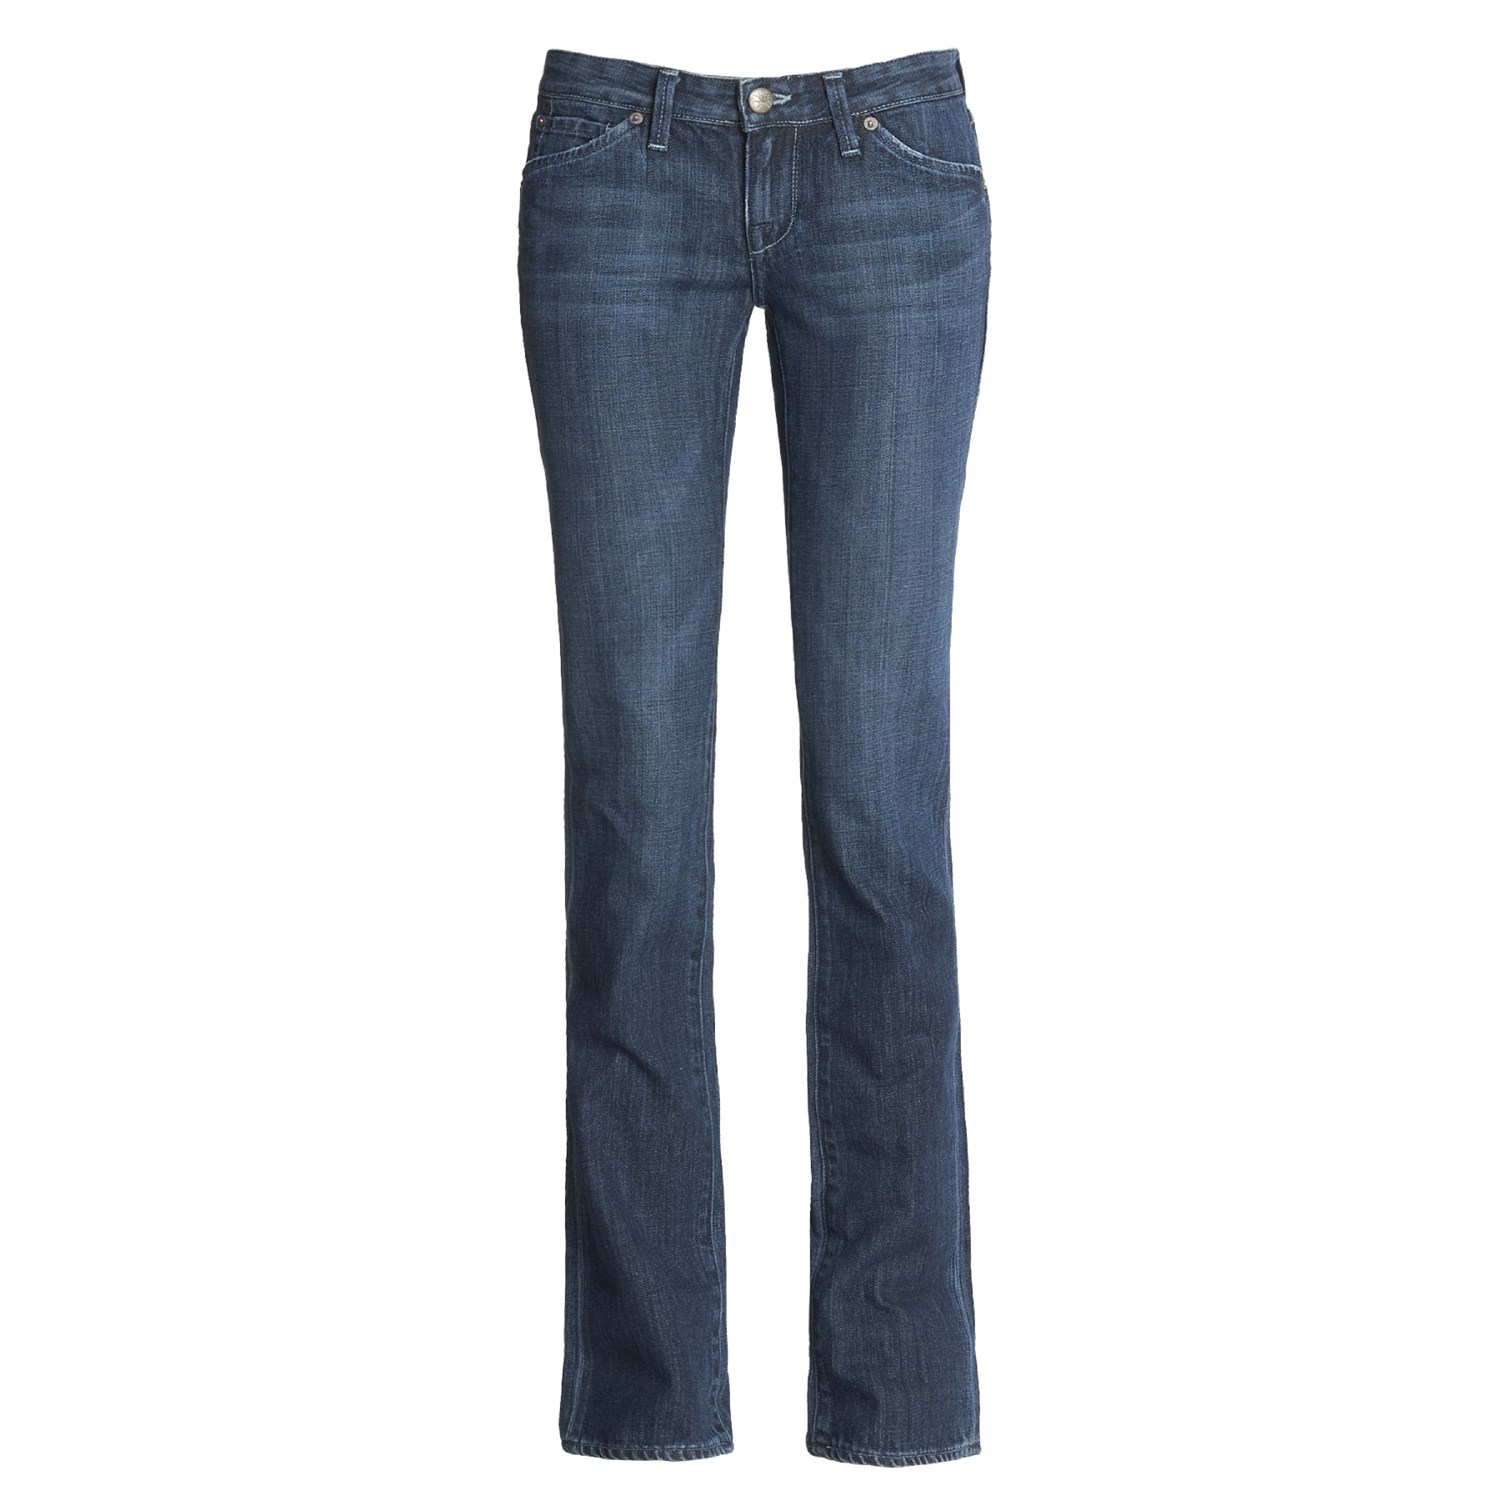 Jeans & Denim: Free Shipping on orders over $45 at omskbridge.ml - Your Online Jeans & Denim Store! Overstock uses cookies to ensure you get the best experience on our site. If you continue on our site, you consent to the use of such cookies. Women's Sexy High Waist Pencil Jeans Casual Blue Ripped Denim Trousers. 1 Review. SALE. Quick.